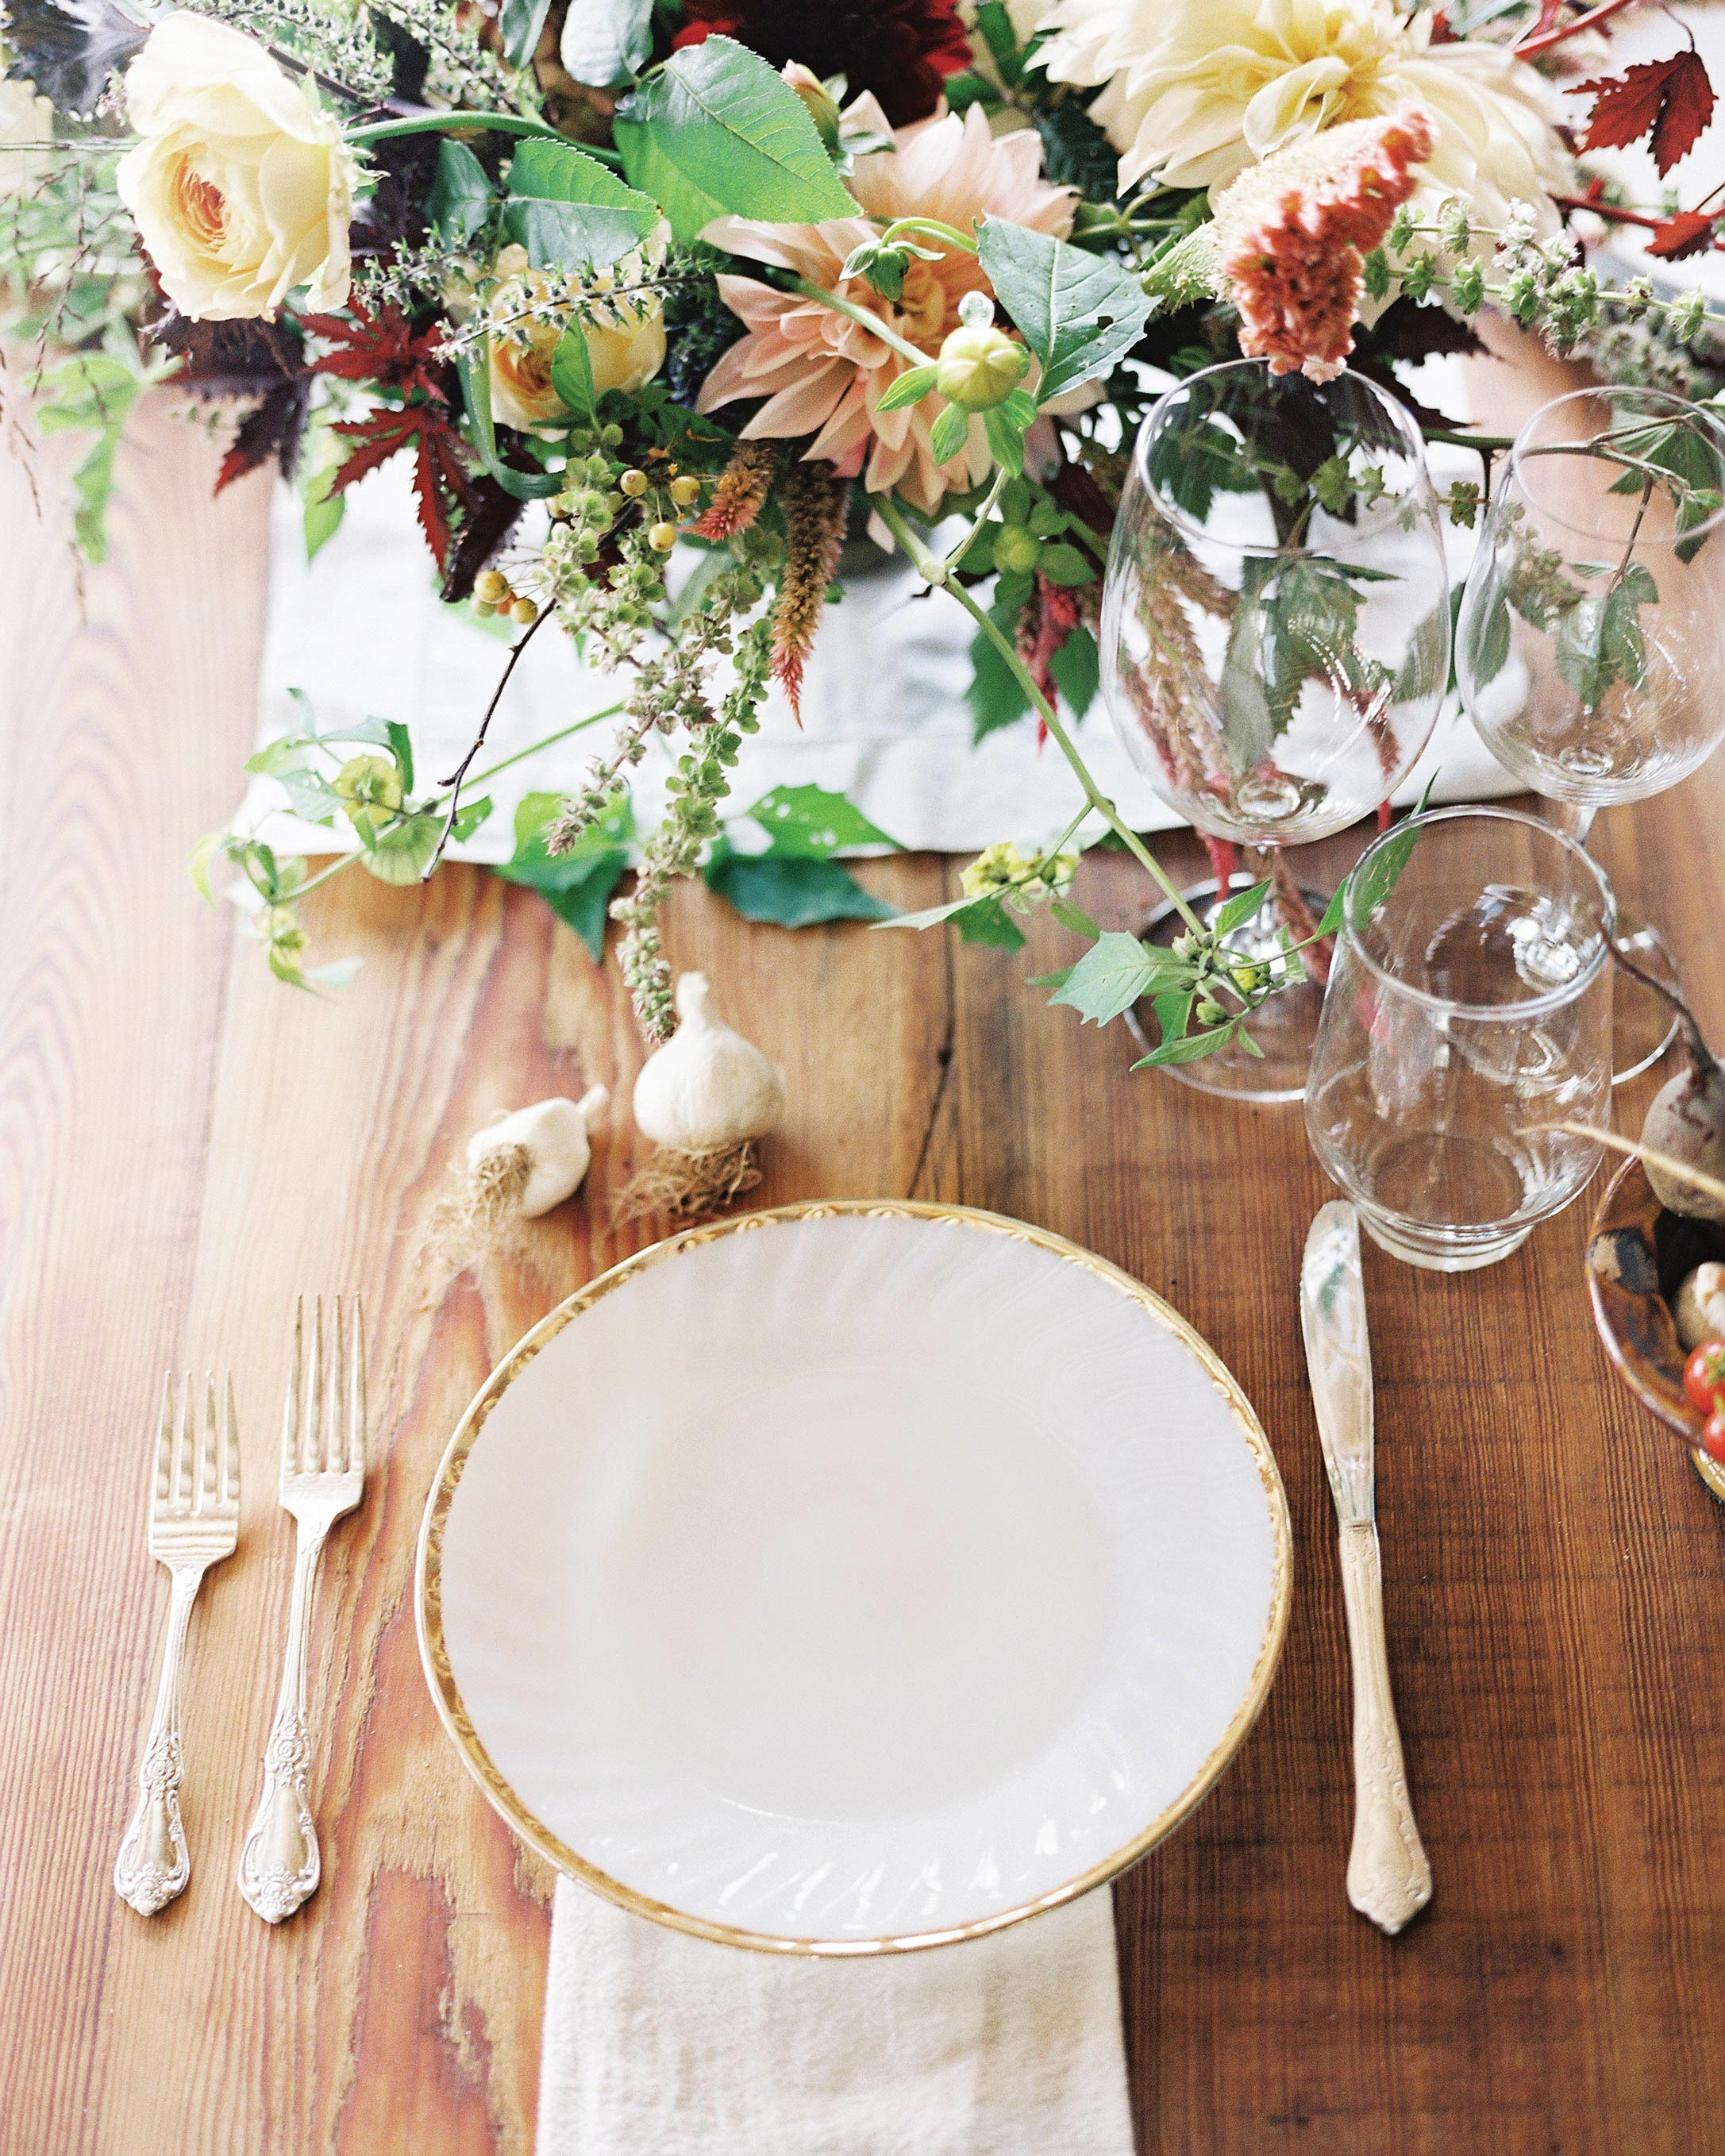 stephanie-mike-wedding-north-carolina-table-setting-dishes-floral-centerpiece-24-s112048.jpg